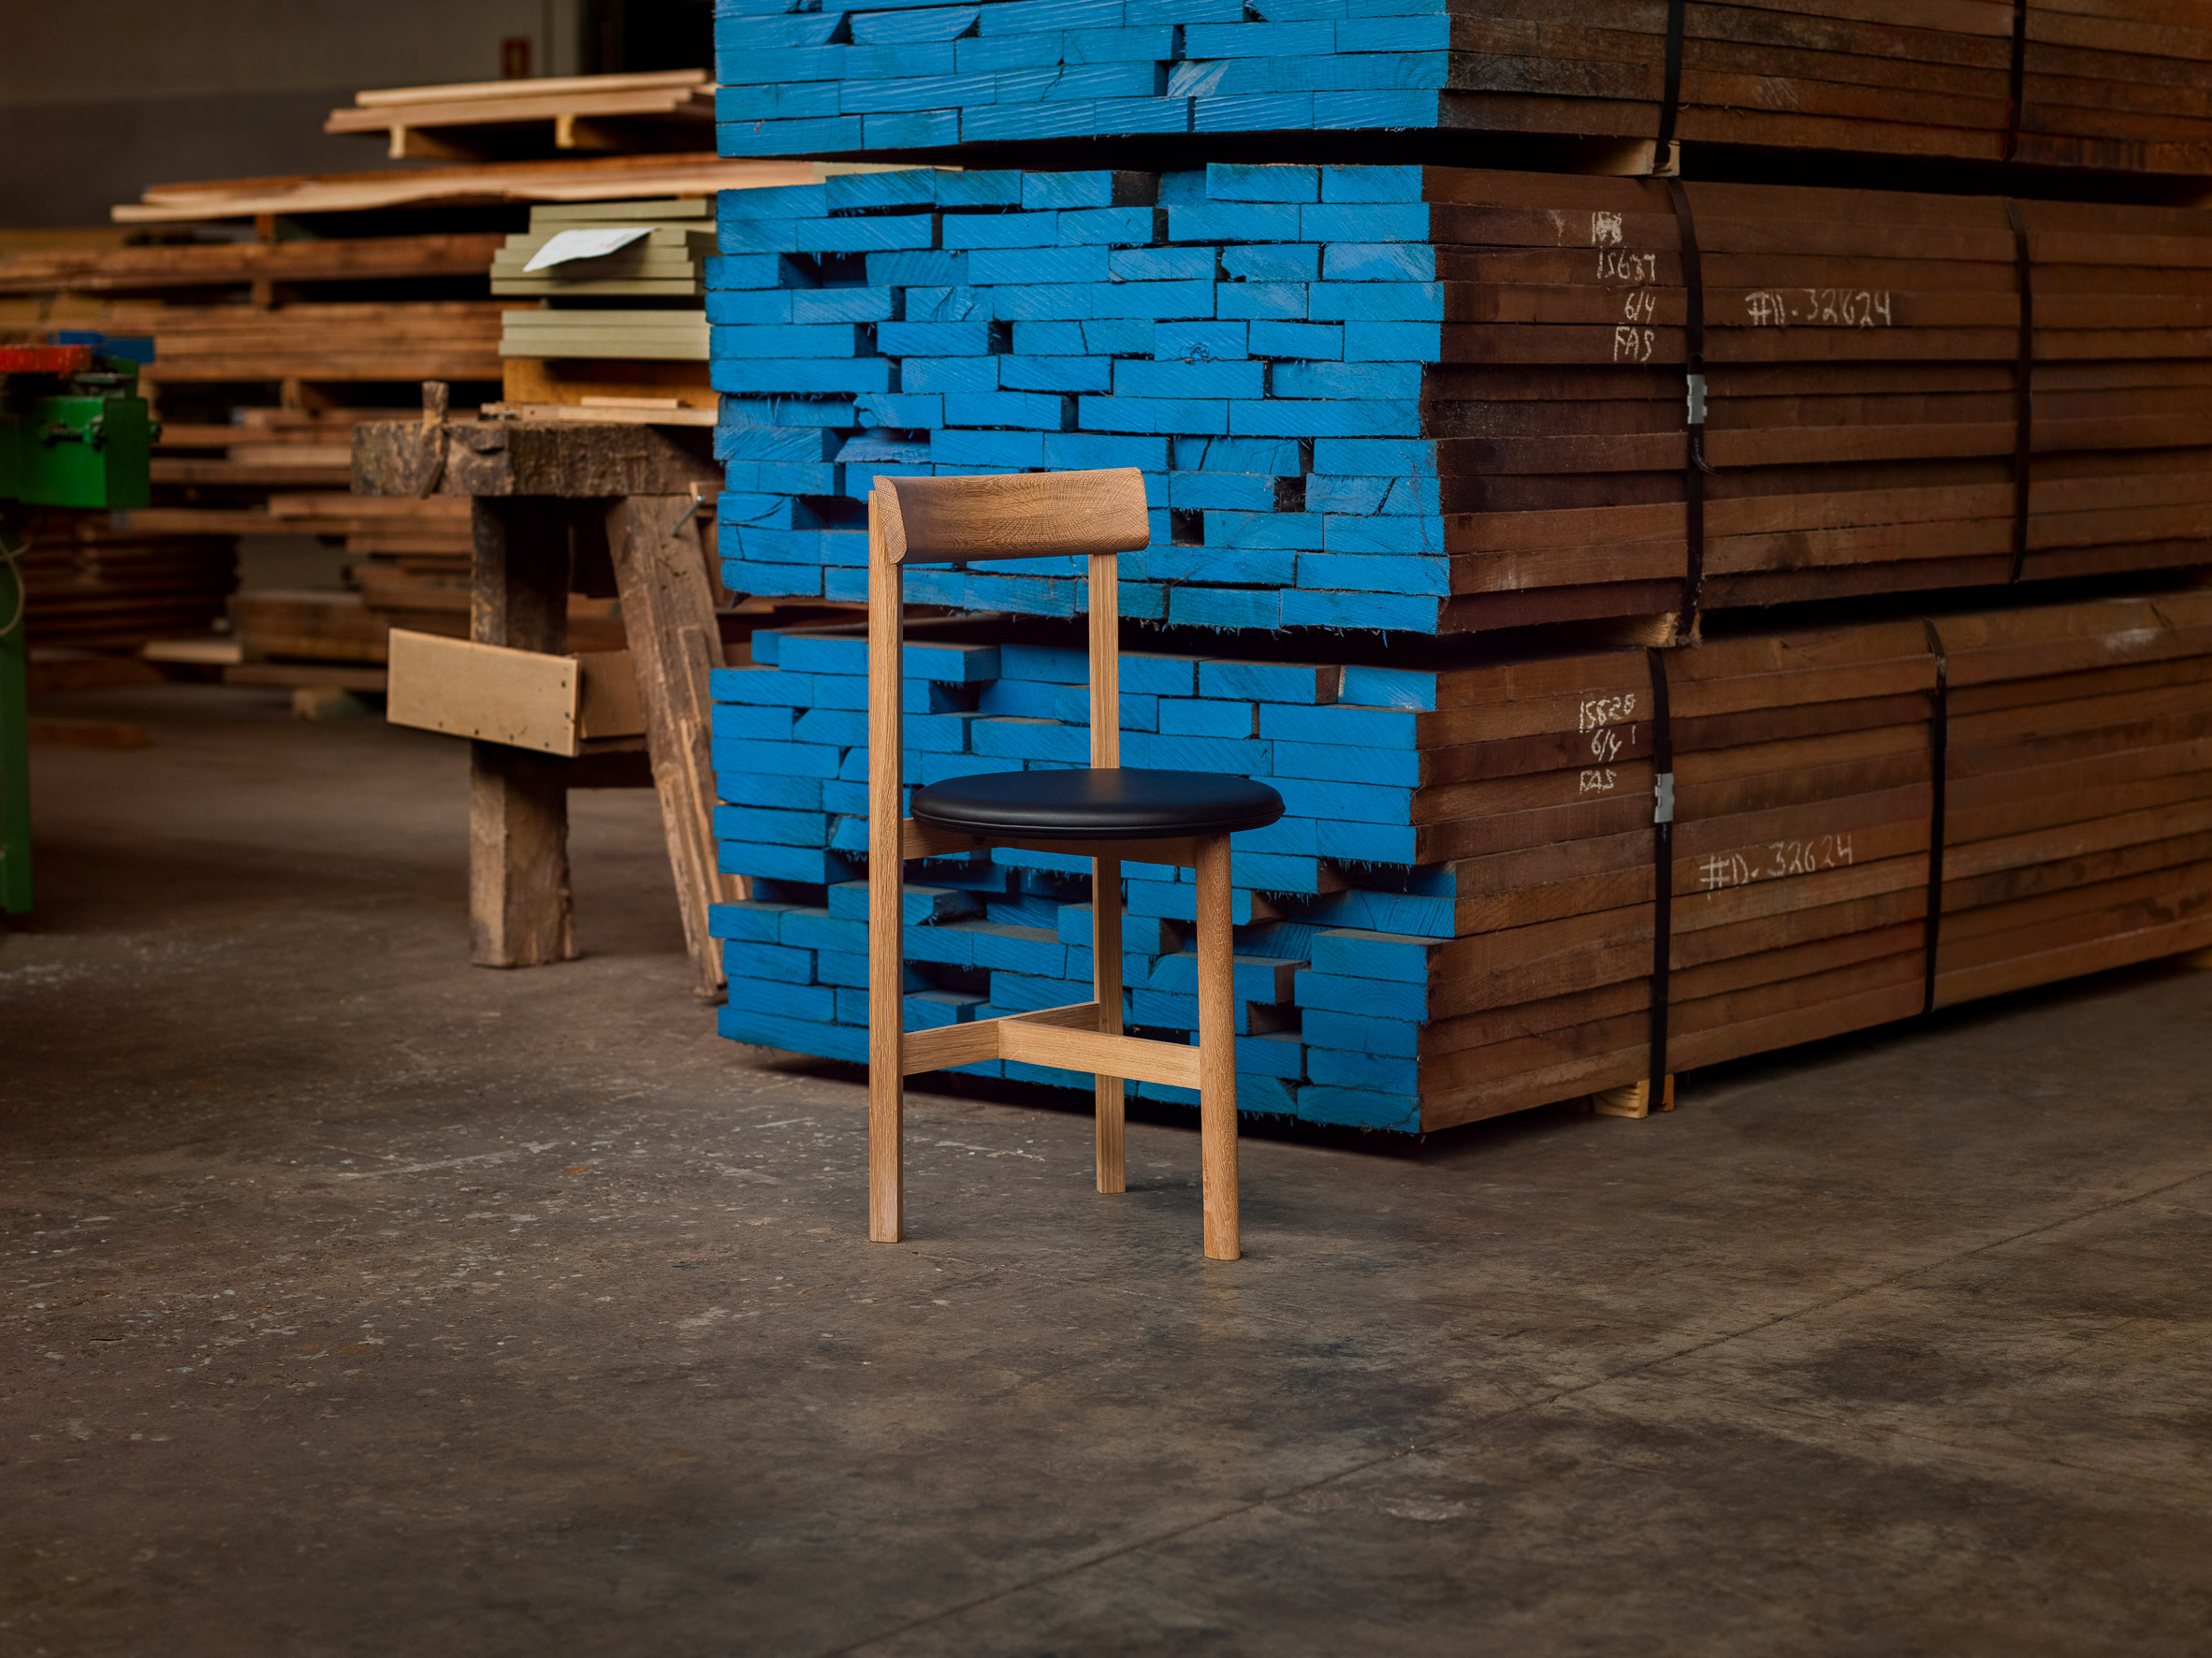 It has a leather seat and a wooden frame by Neri&Hu